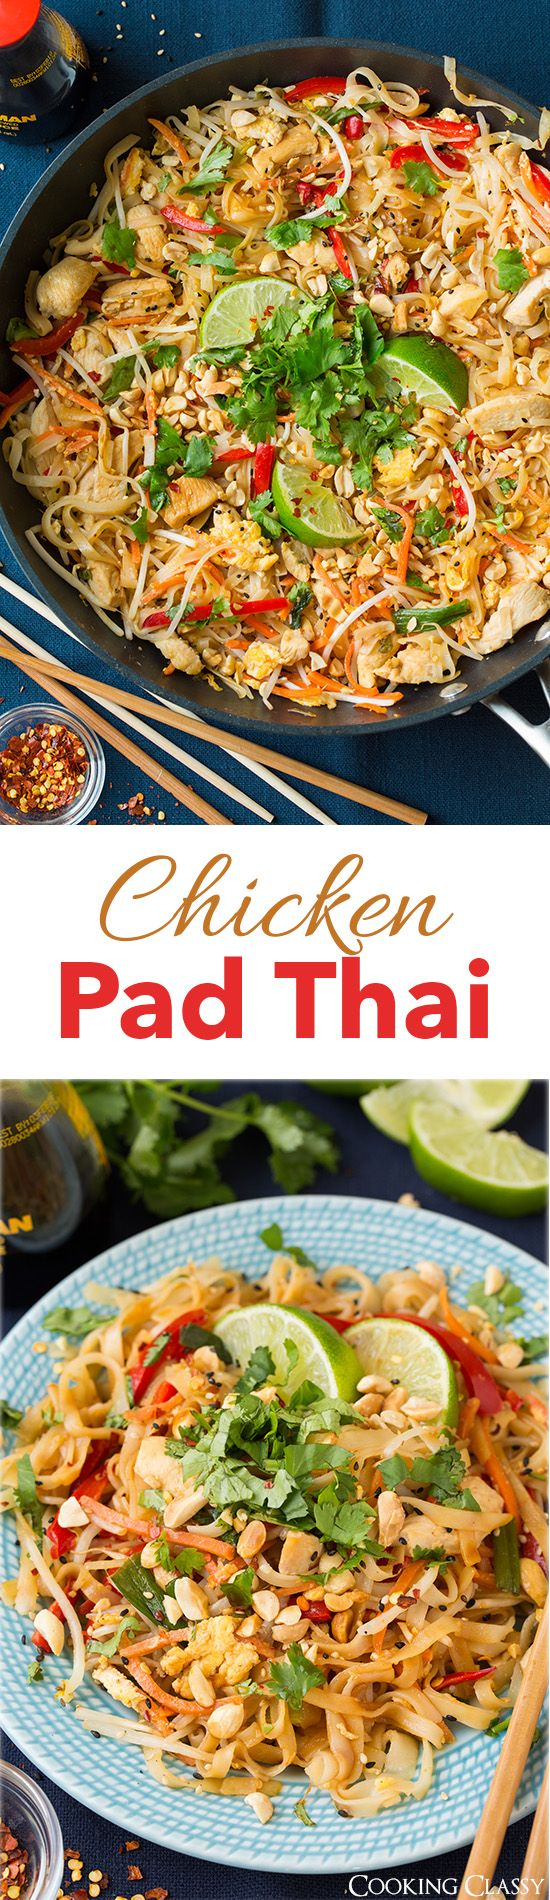 Chicken Pad Thai - this is SO SO good! Delicious crave worthy flavors.